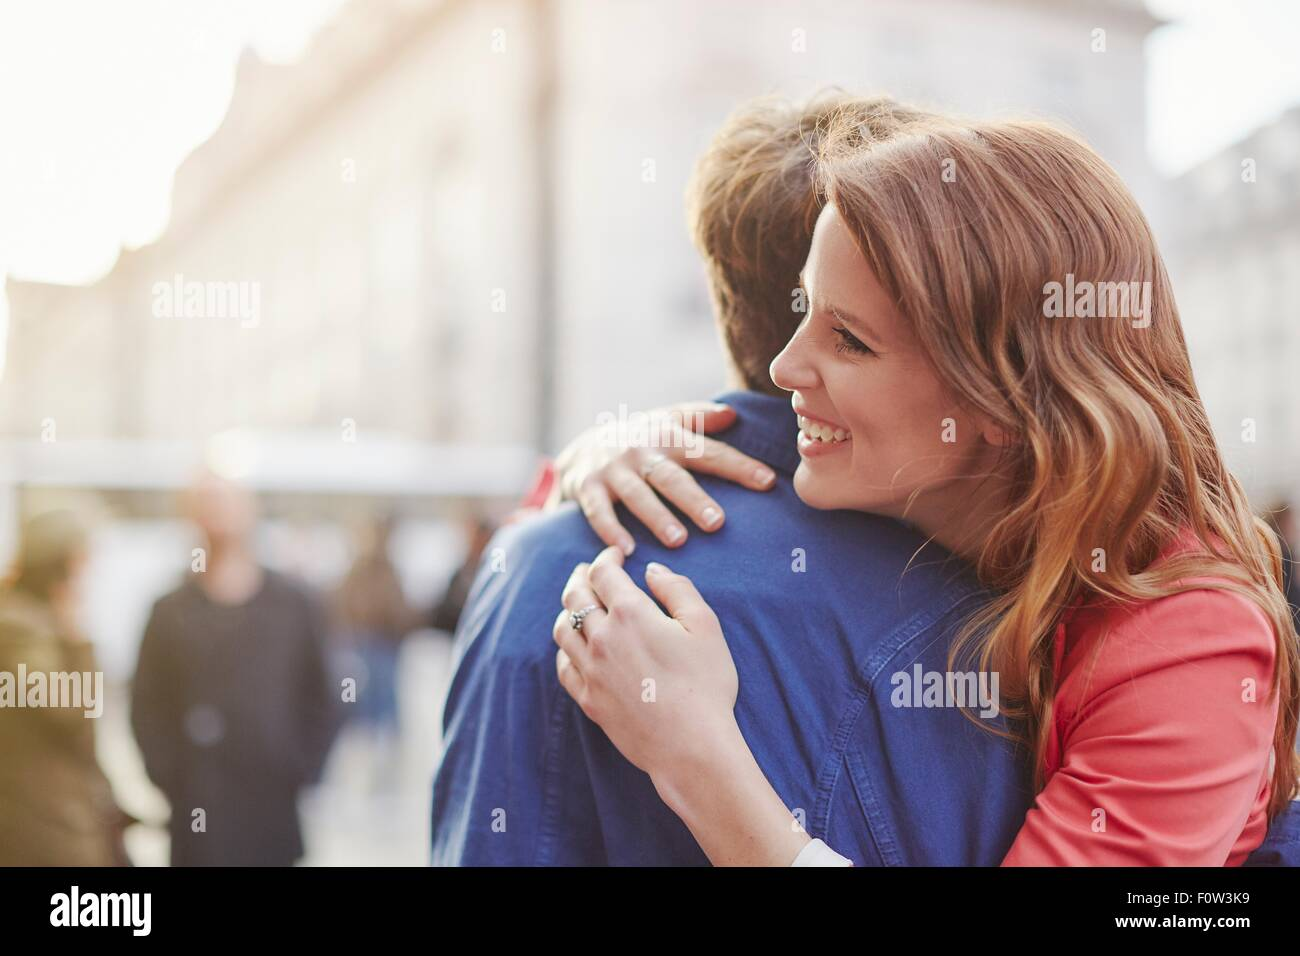 Couple hugging on street, London, UK Photo Stock